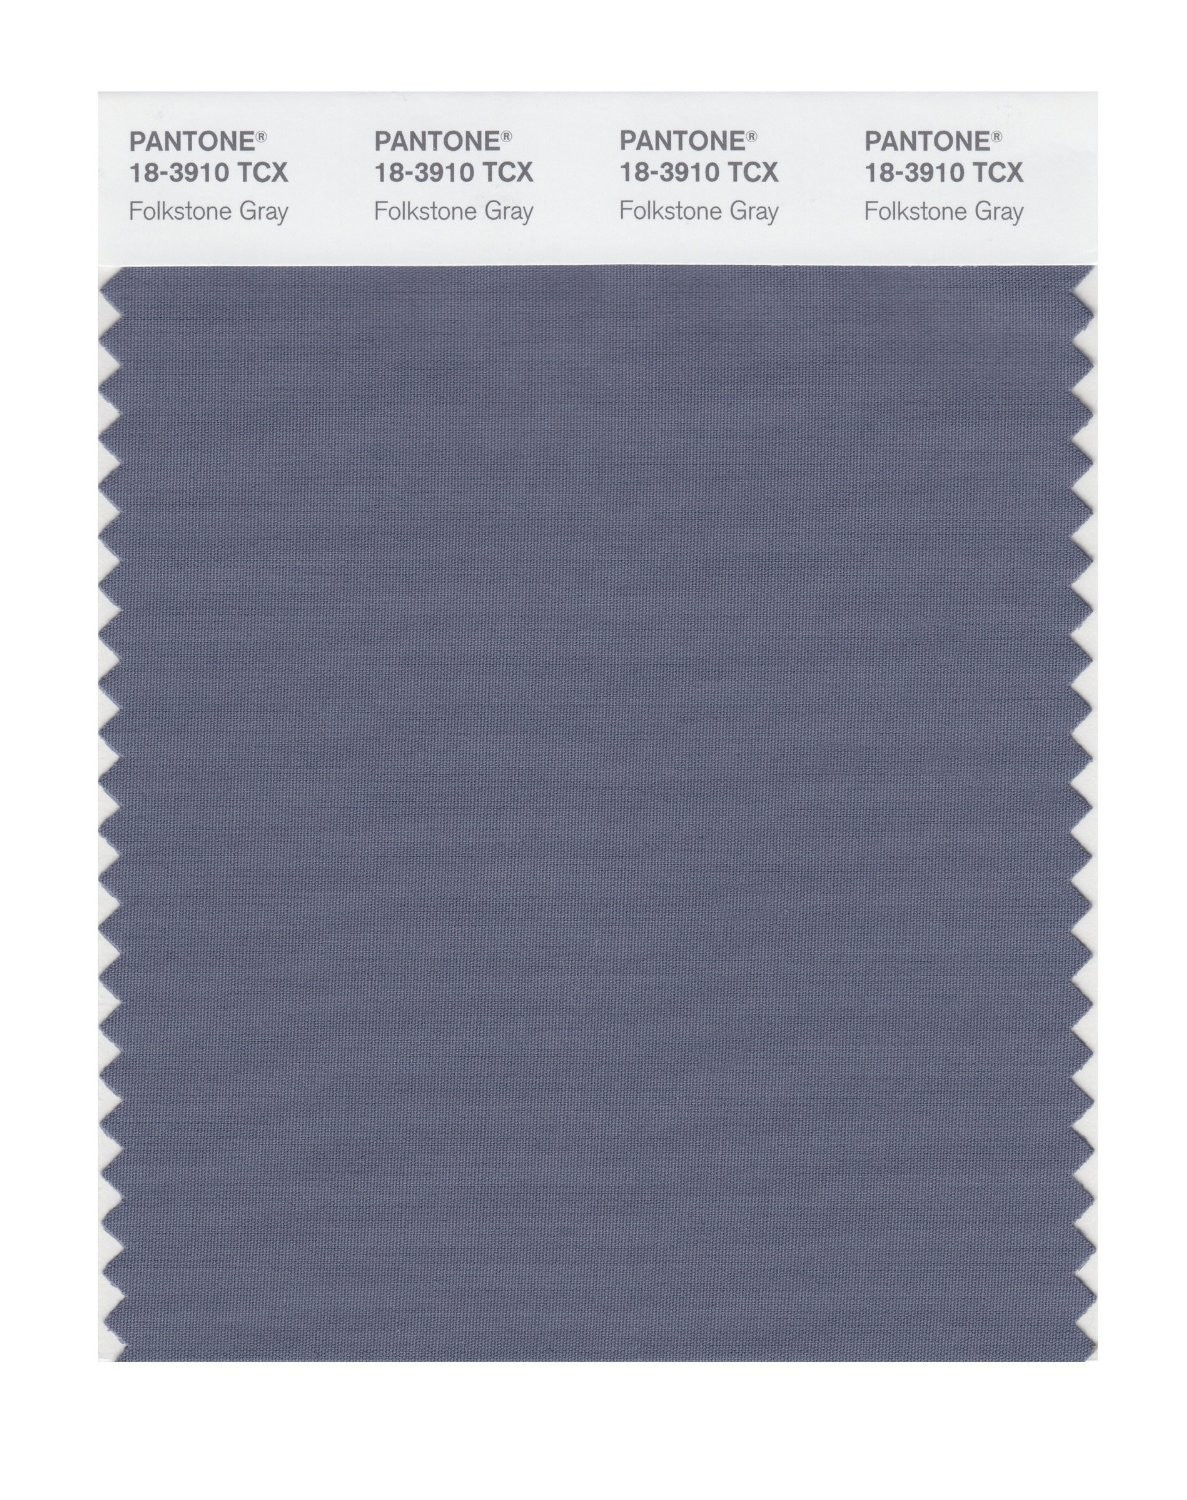 Pantone 18-3910 TCX Swatch Card Folkstone Gray